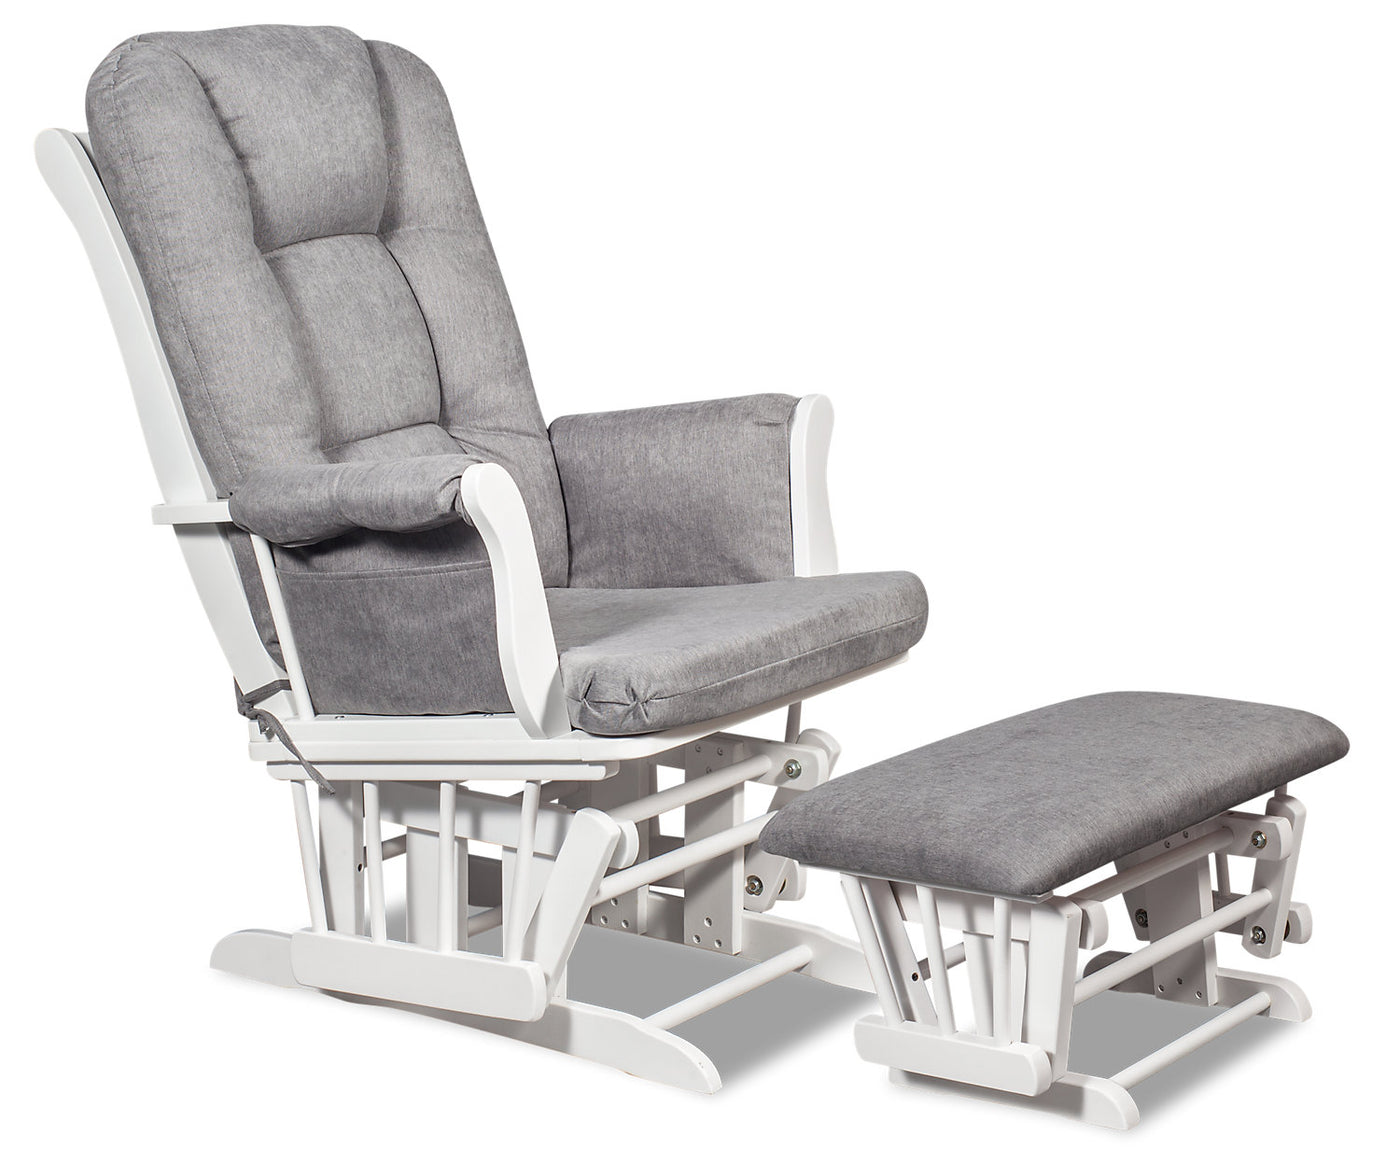 Anita Microsuede Gliding Chair with Ottoman - White and Grey